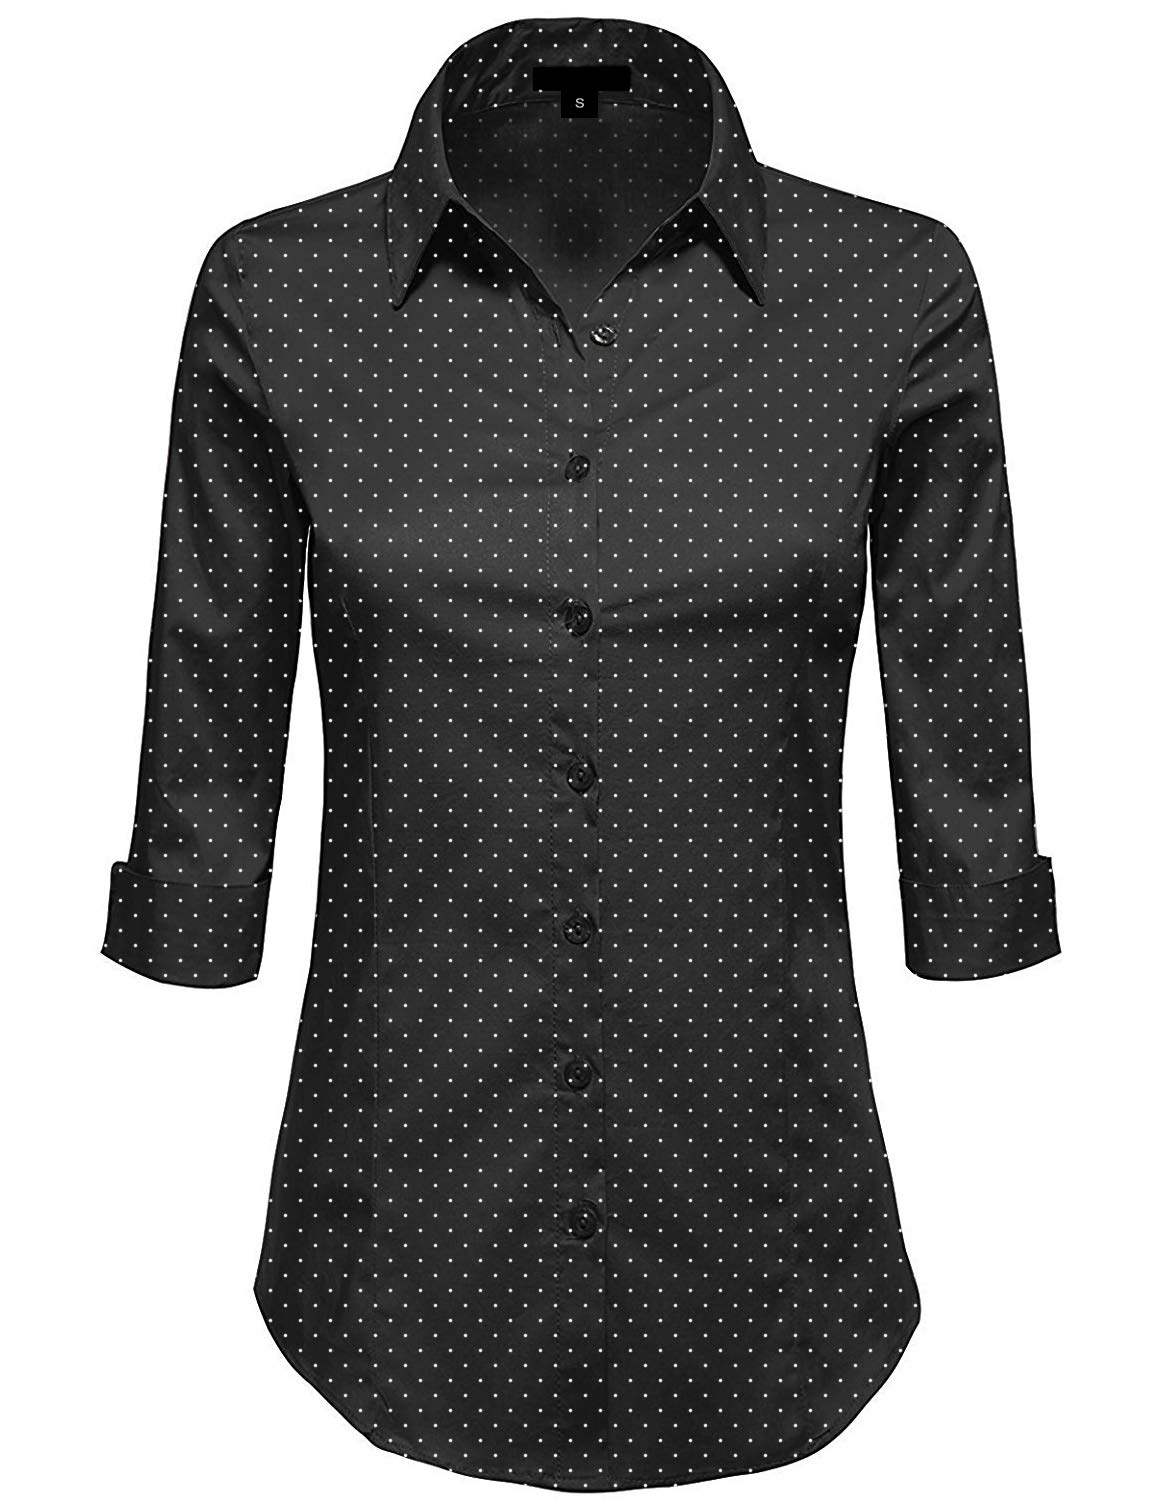 MAYSIX APPAREL Plus Size 3/4 Sleeve Stretchy Button Down Collar Office Formal Shirt Blouse for Women BLACKDOT 1XL